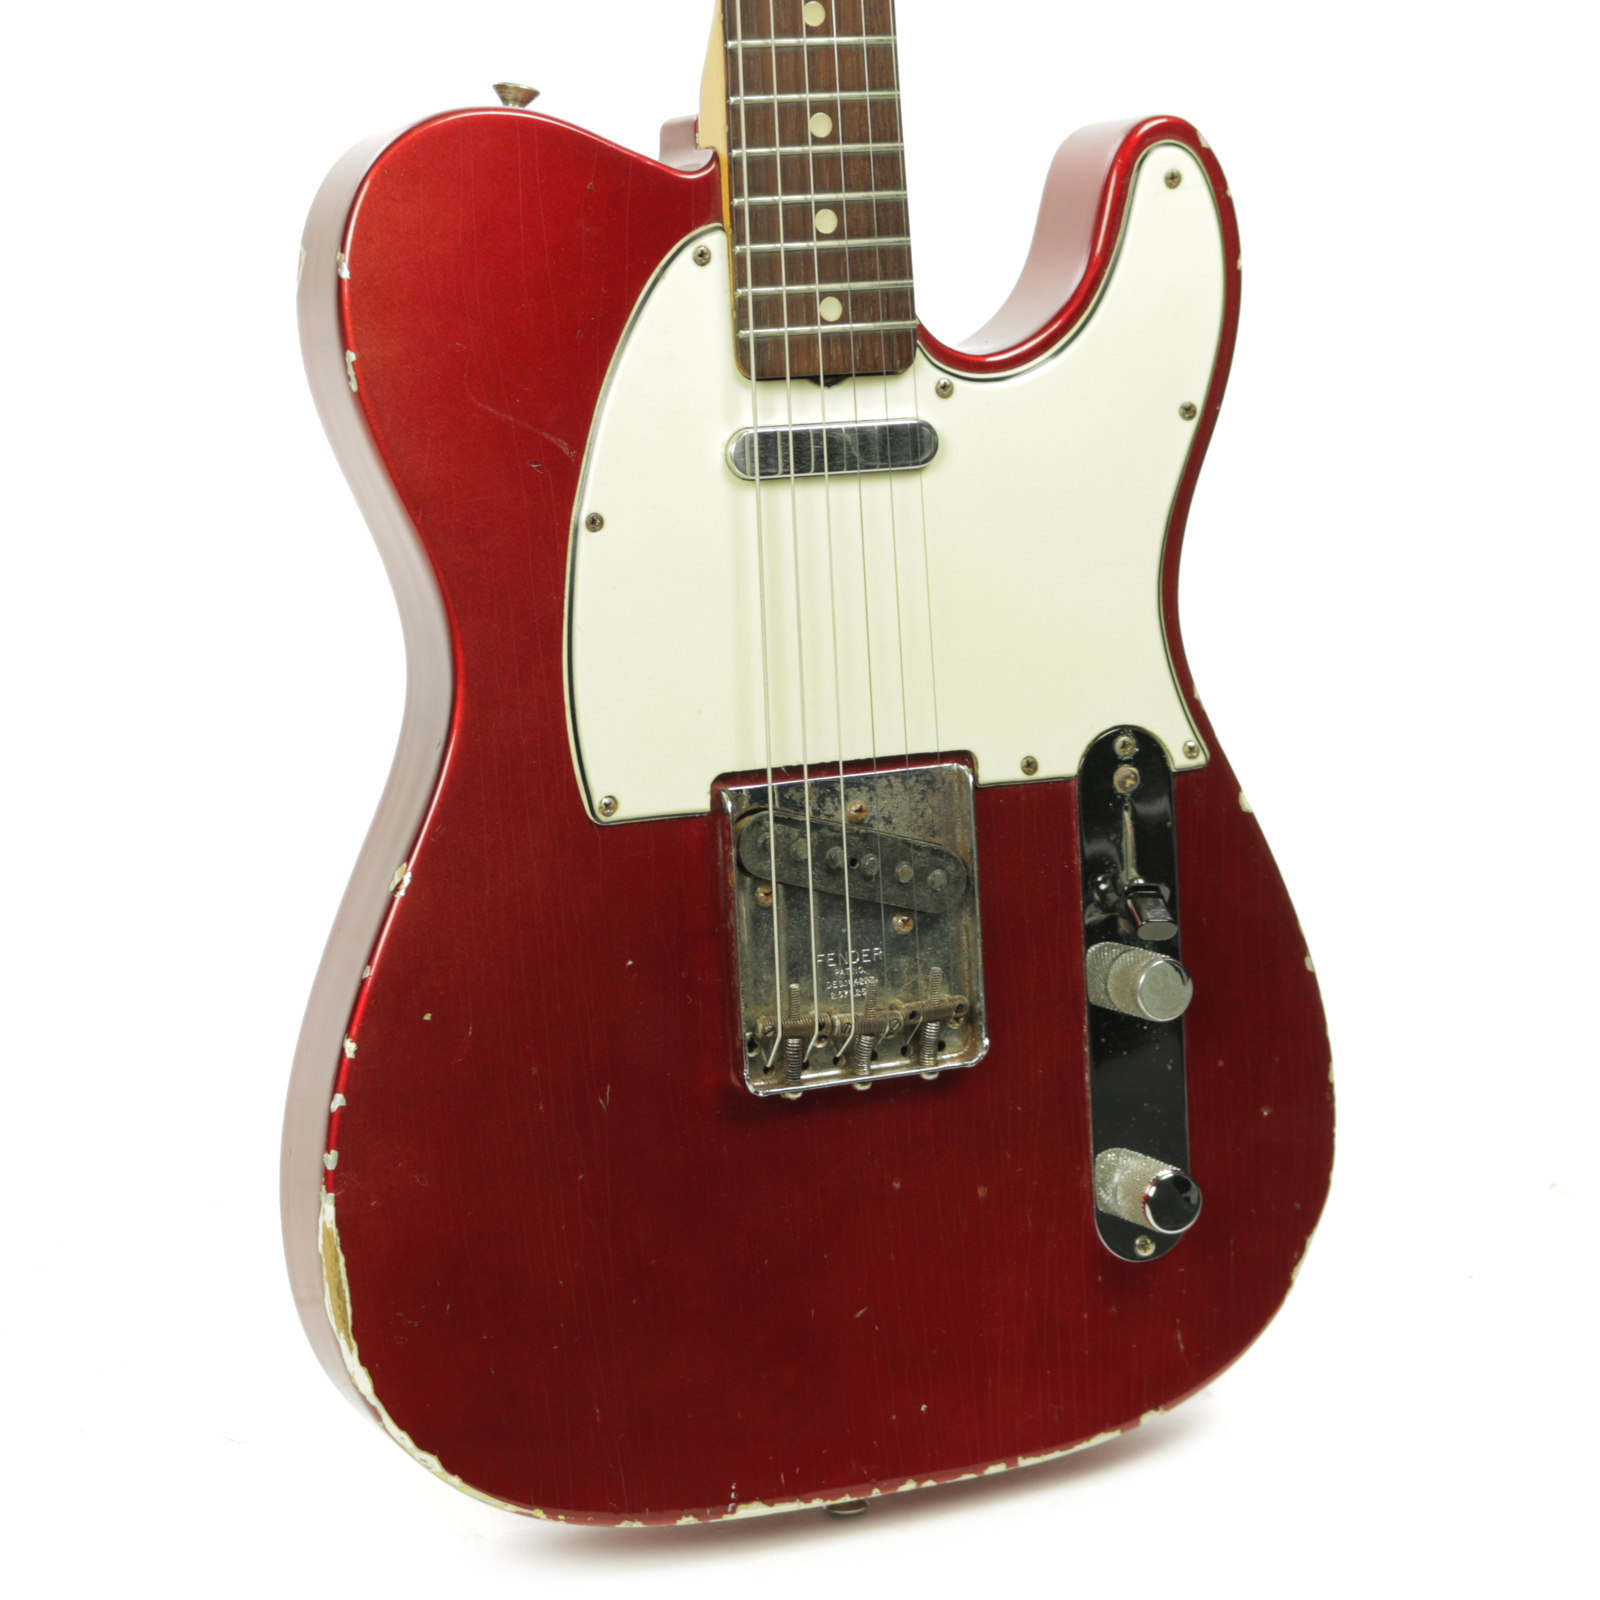 1965 Fender Telecaster Candy Apple Red